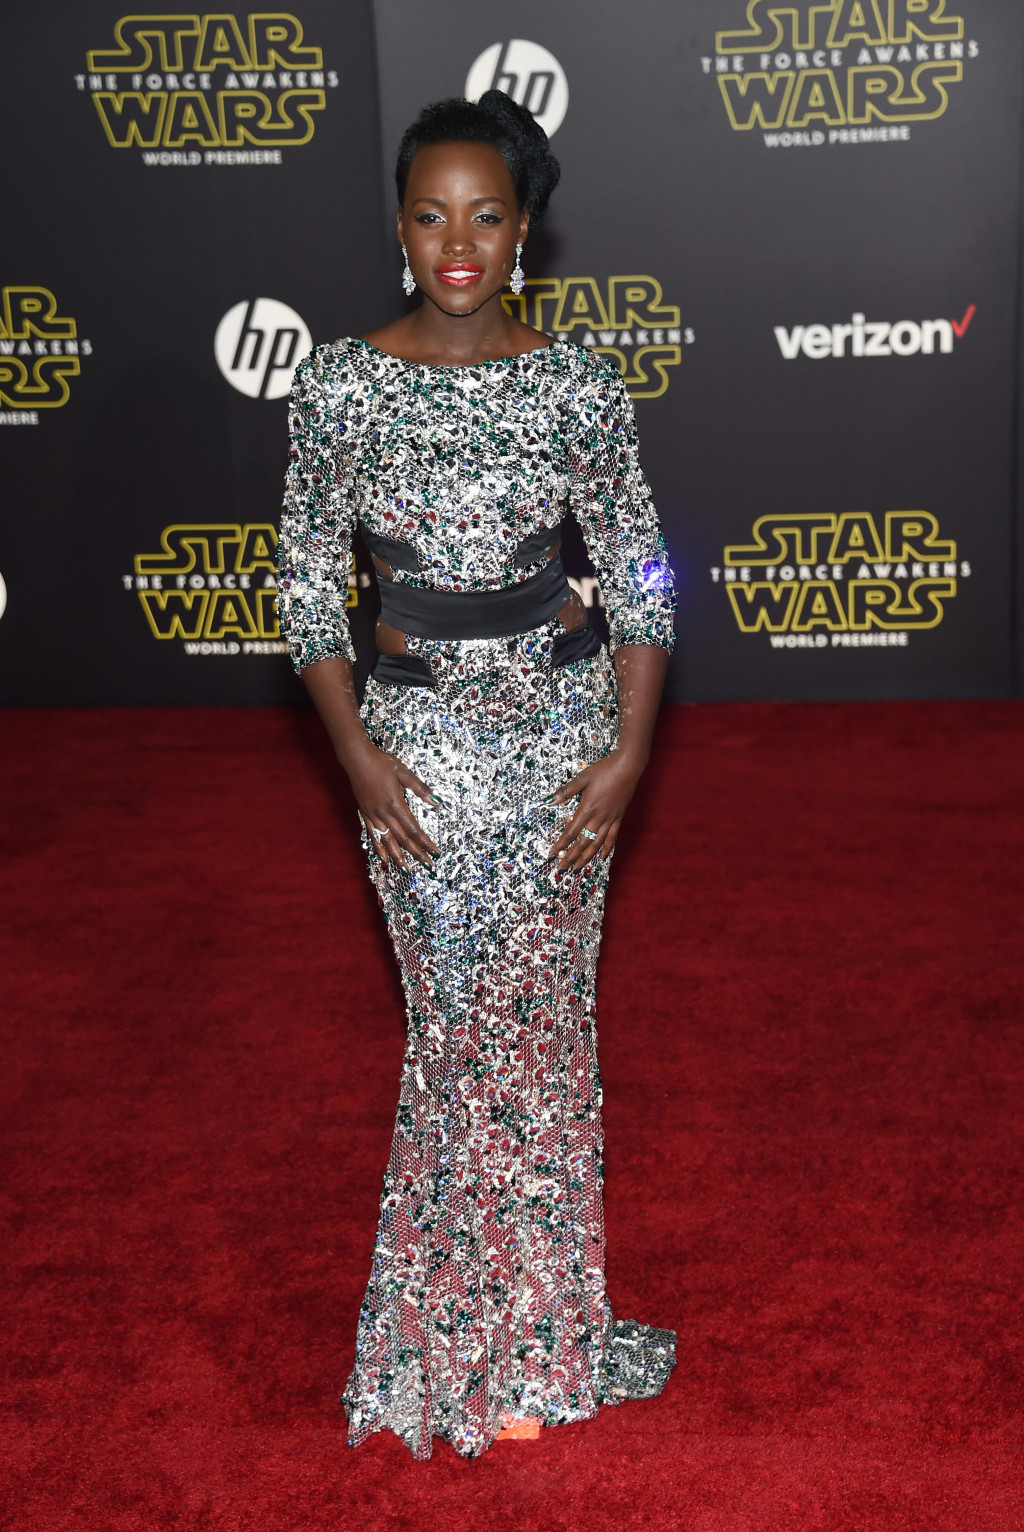 The Best Otherworldly Red-Carpet Looks from the 'Star Wars VII' Premiere